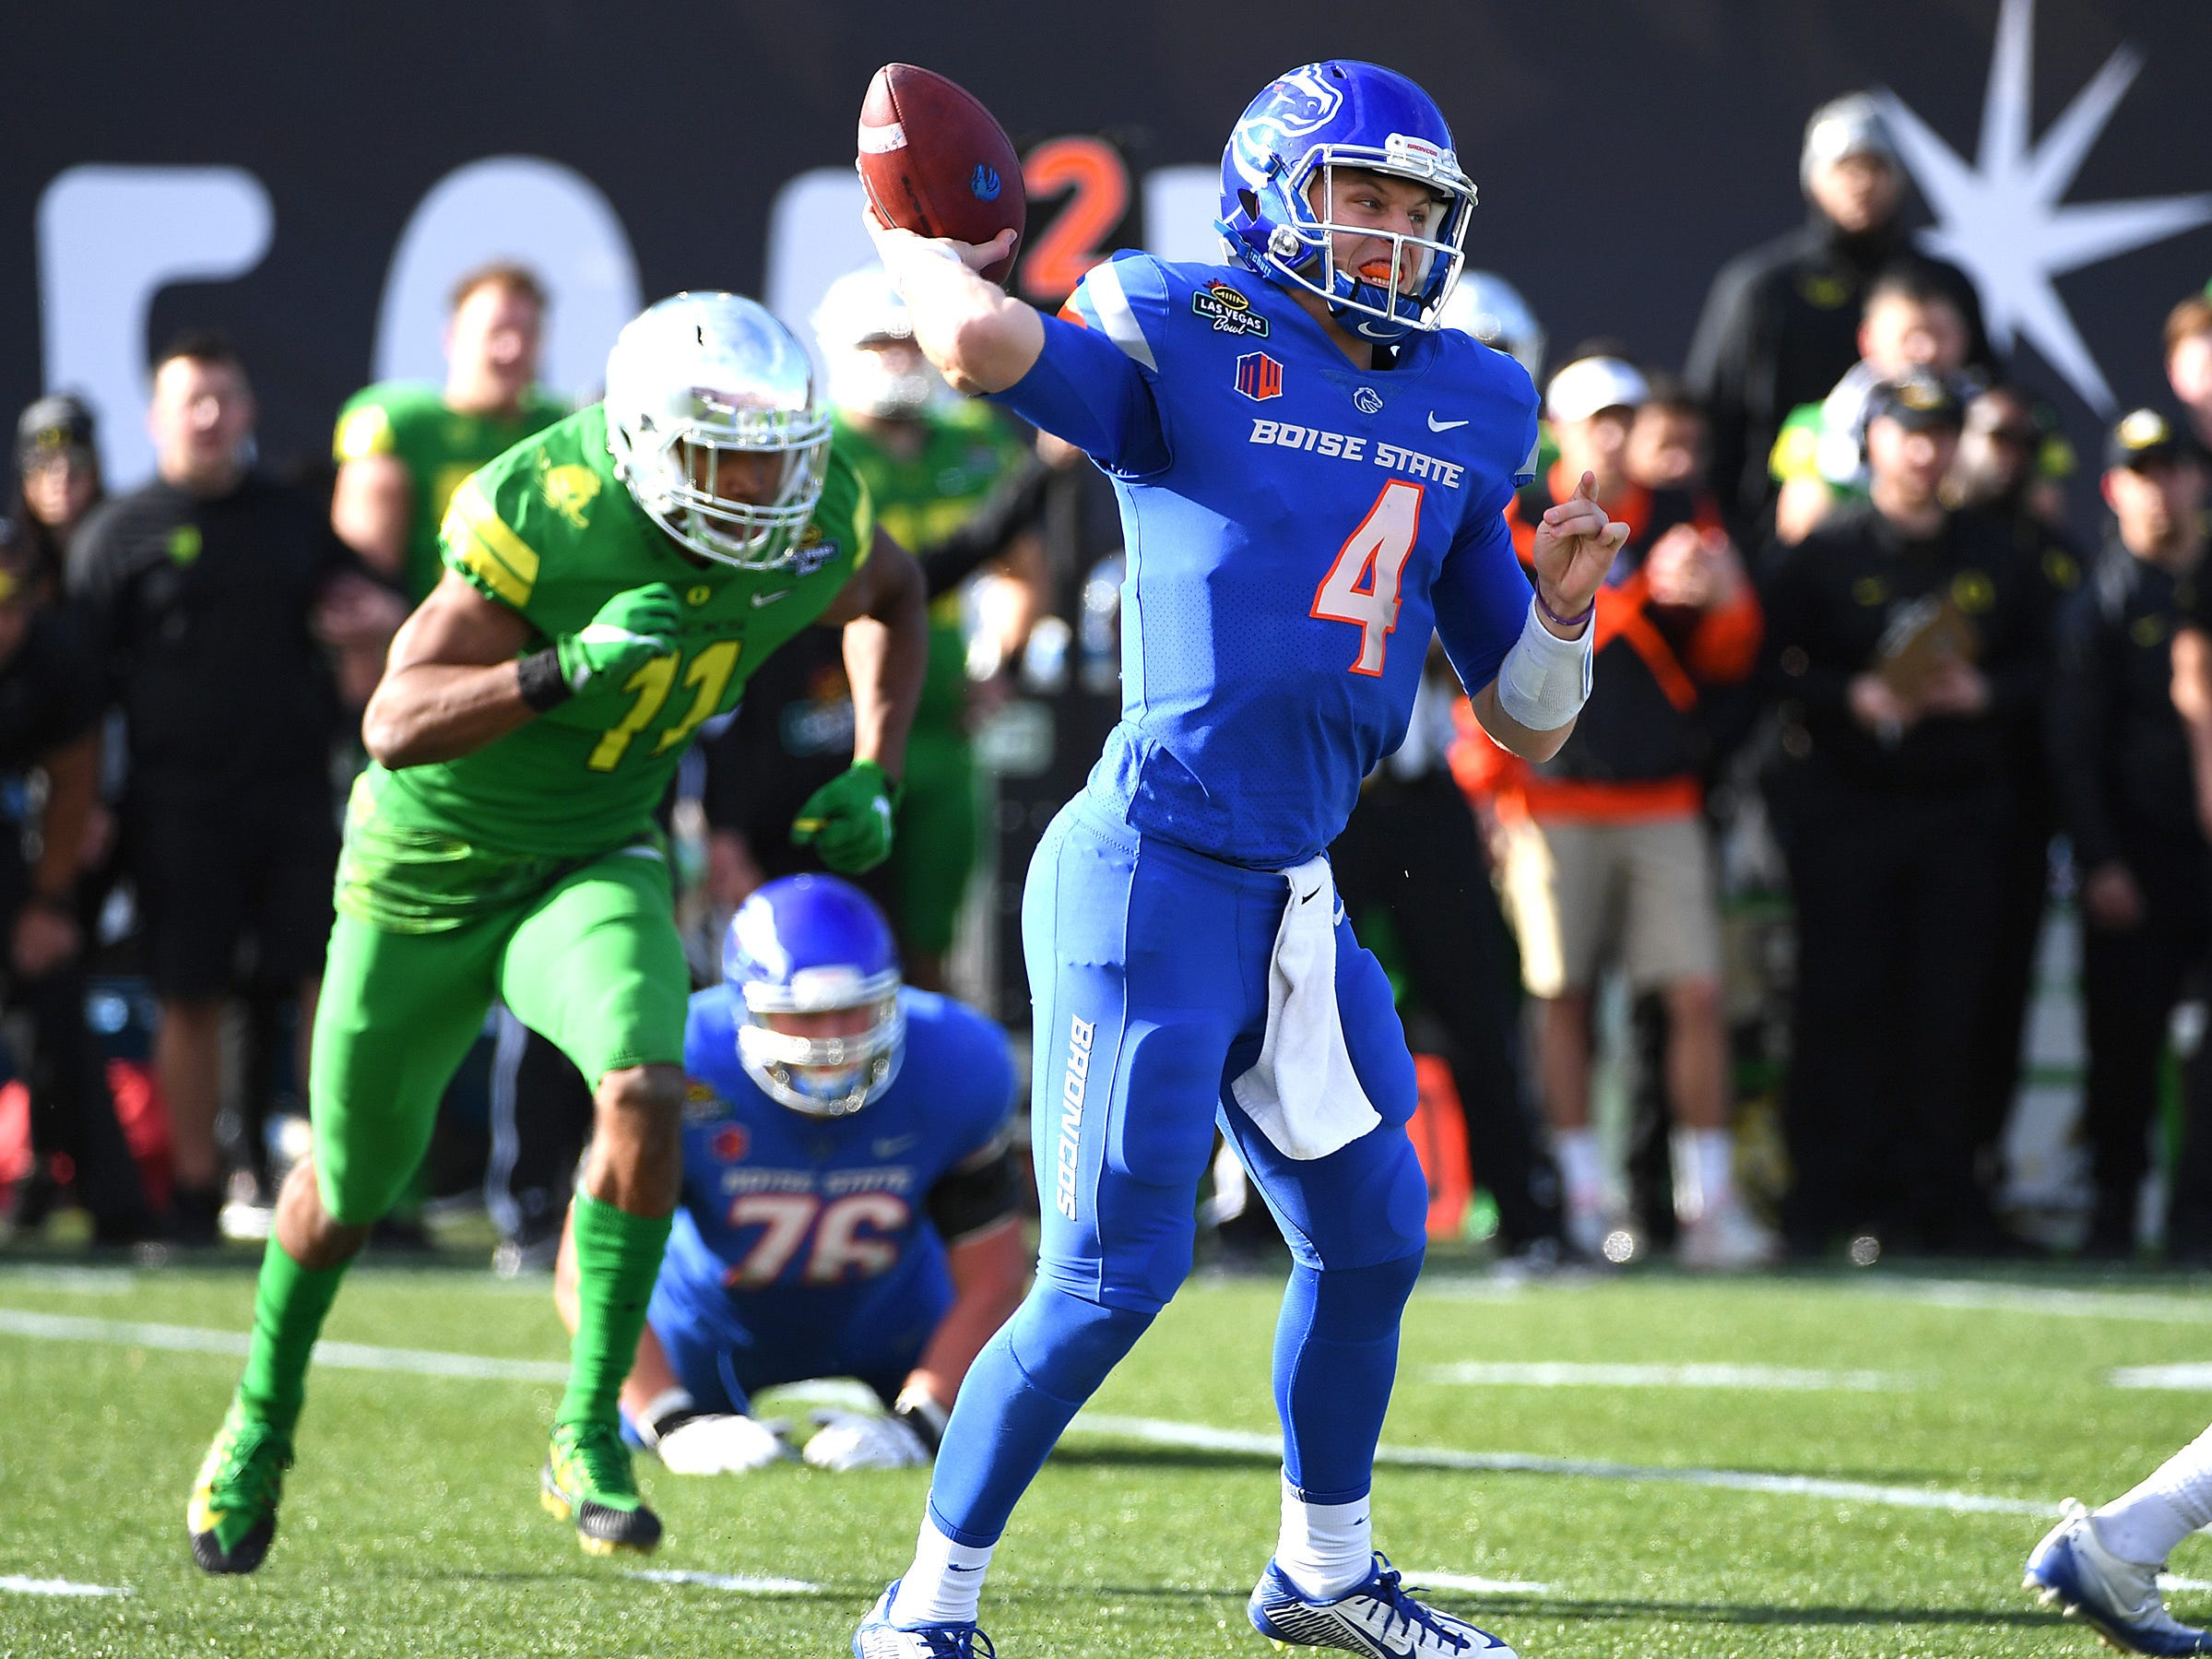 No. 22 Boise State Broncos (11-3 in 2017).